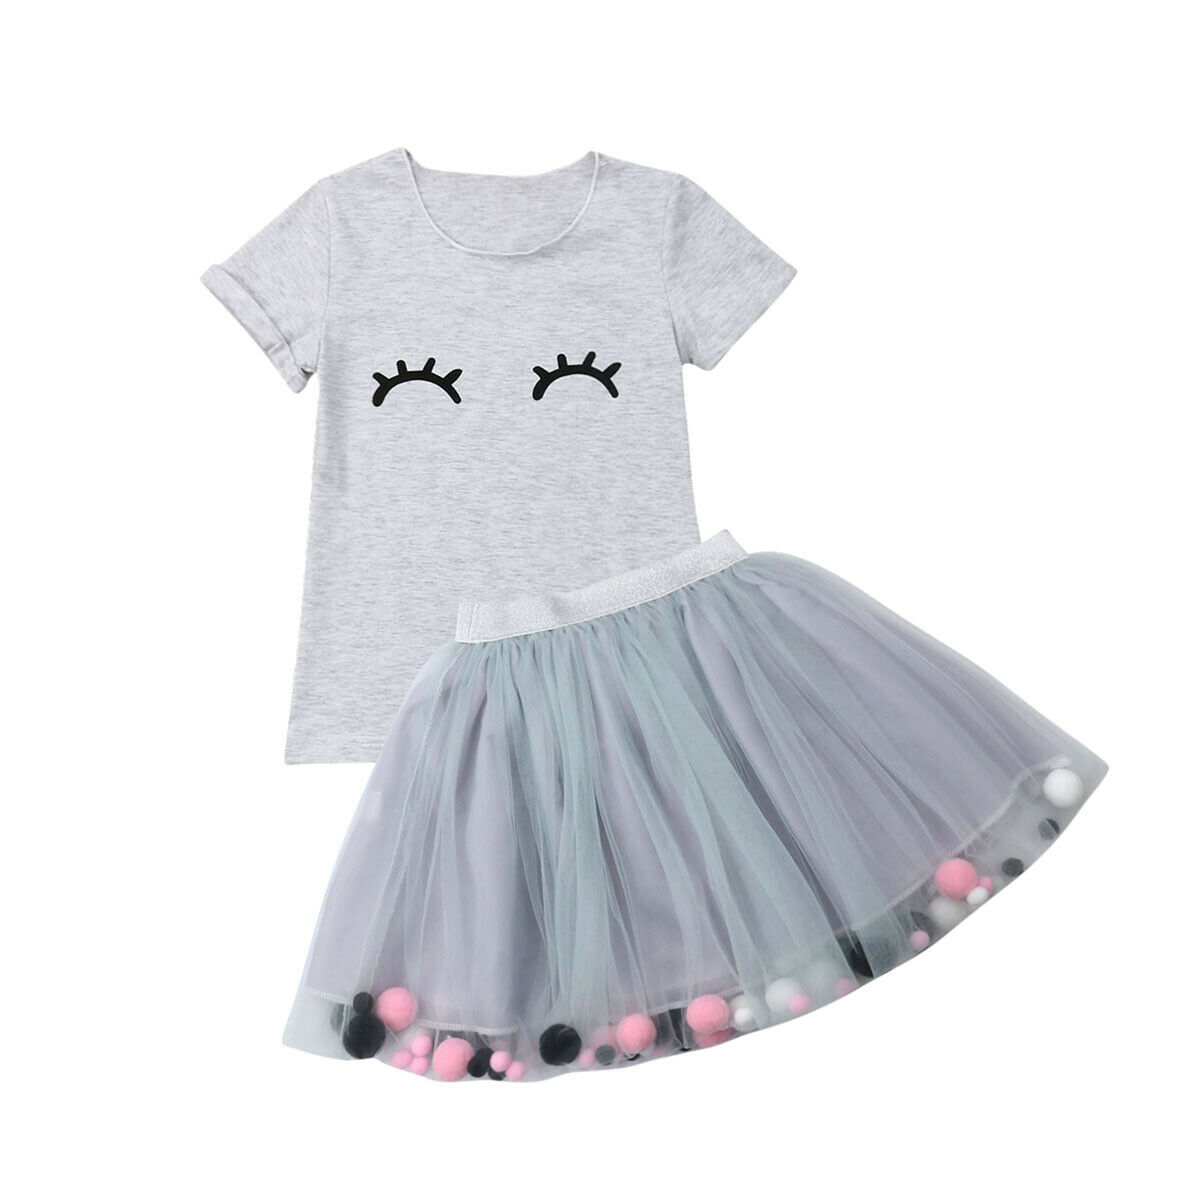 d20f44334 1-4Years 2PCS Toddler Kids Baby Girl Outfits Clothes T-shirt Tops+Tutu